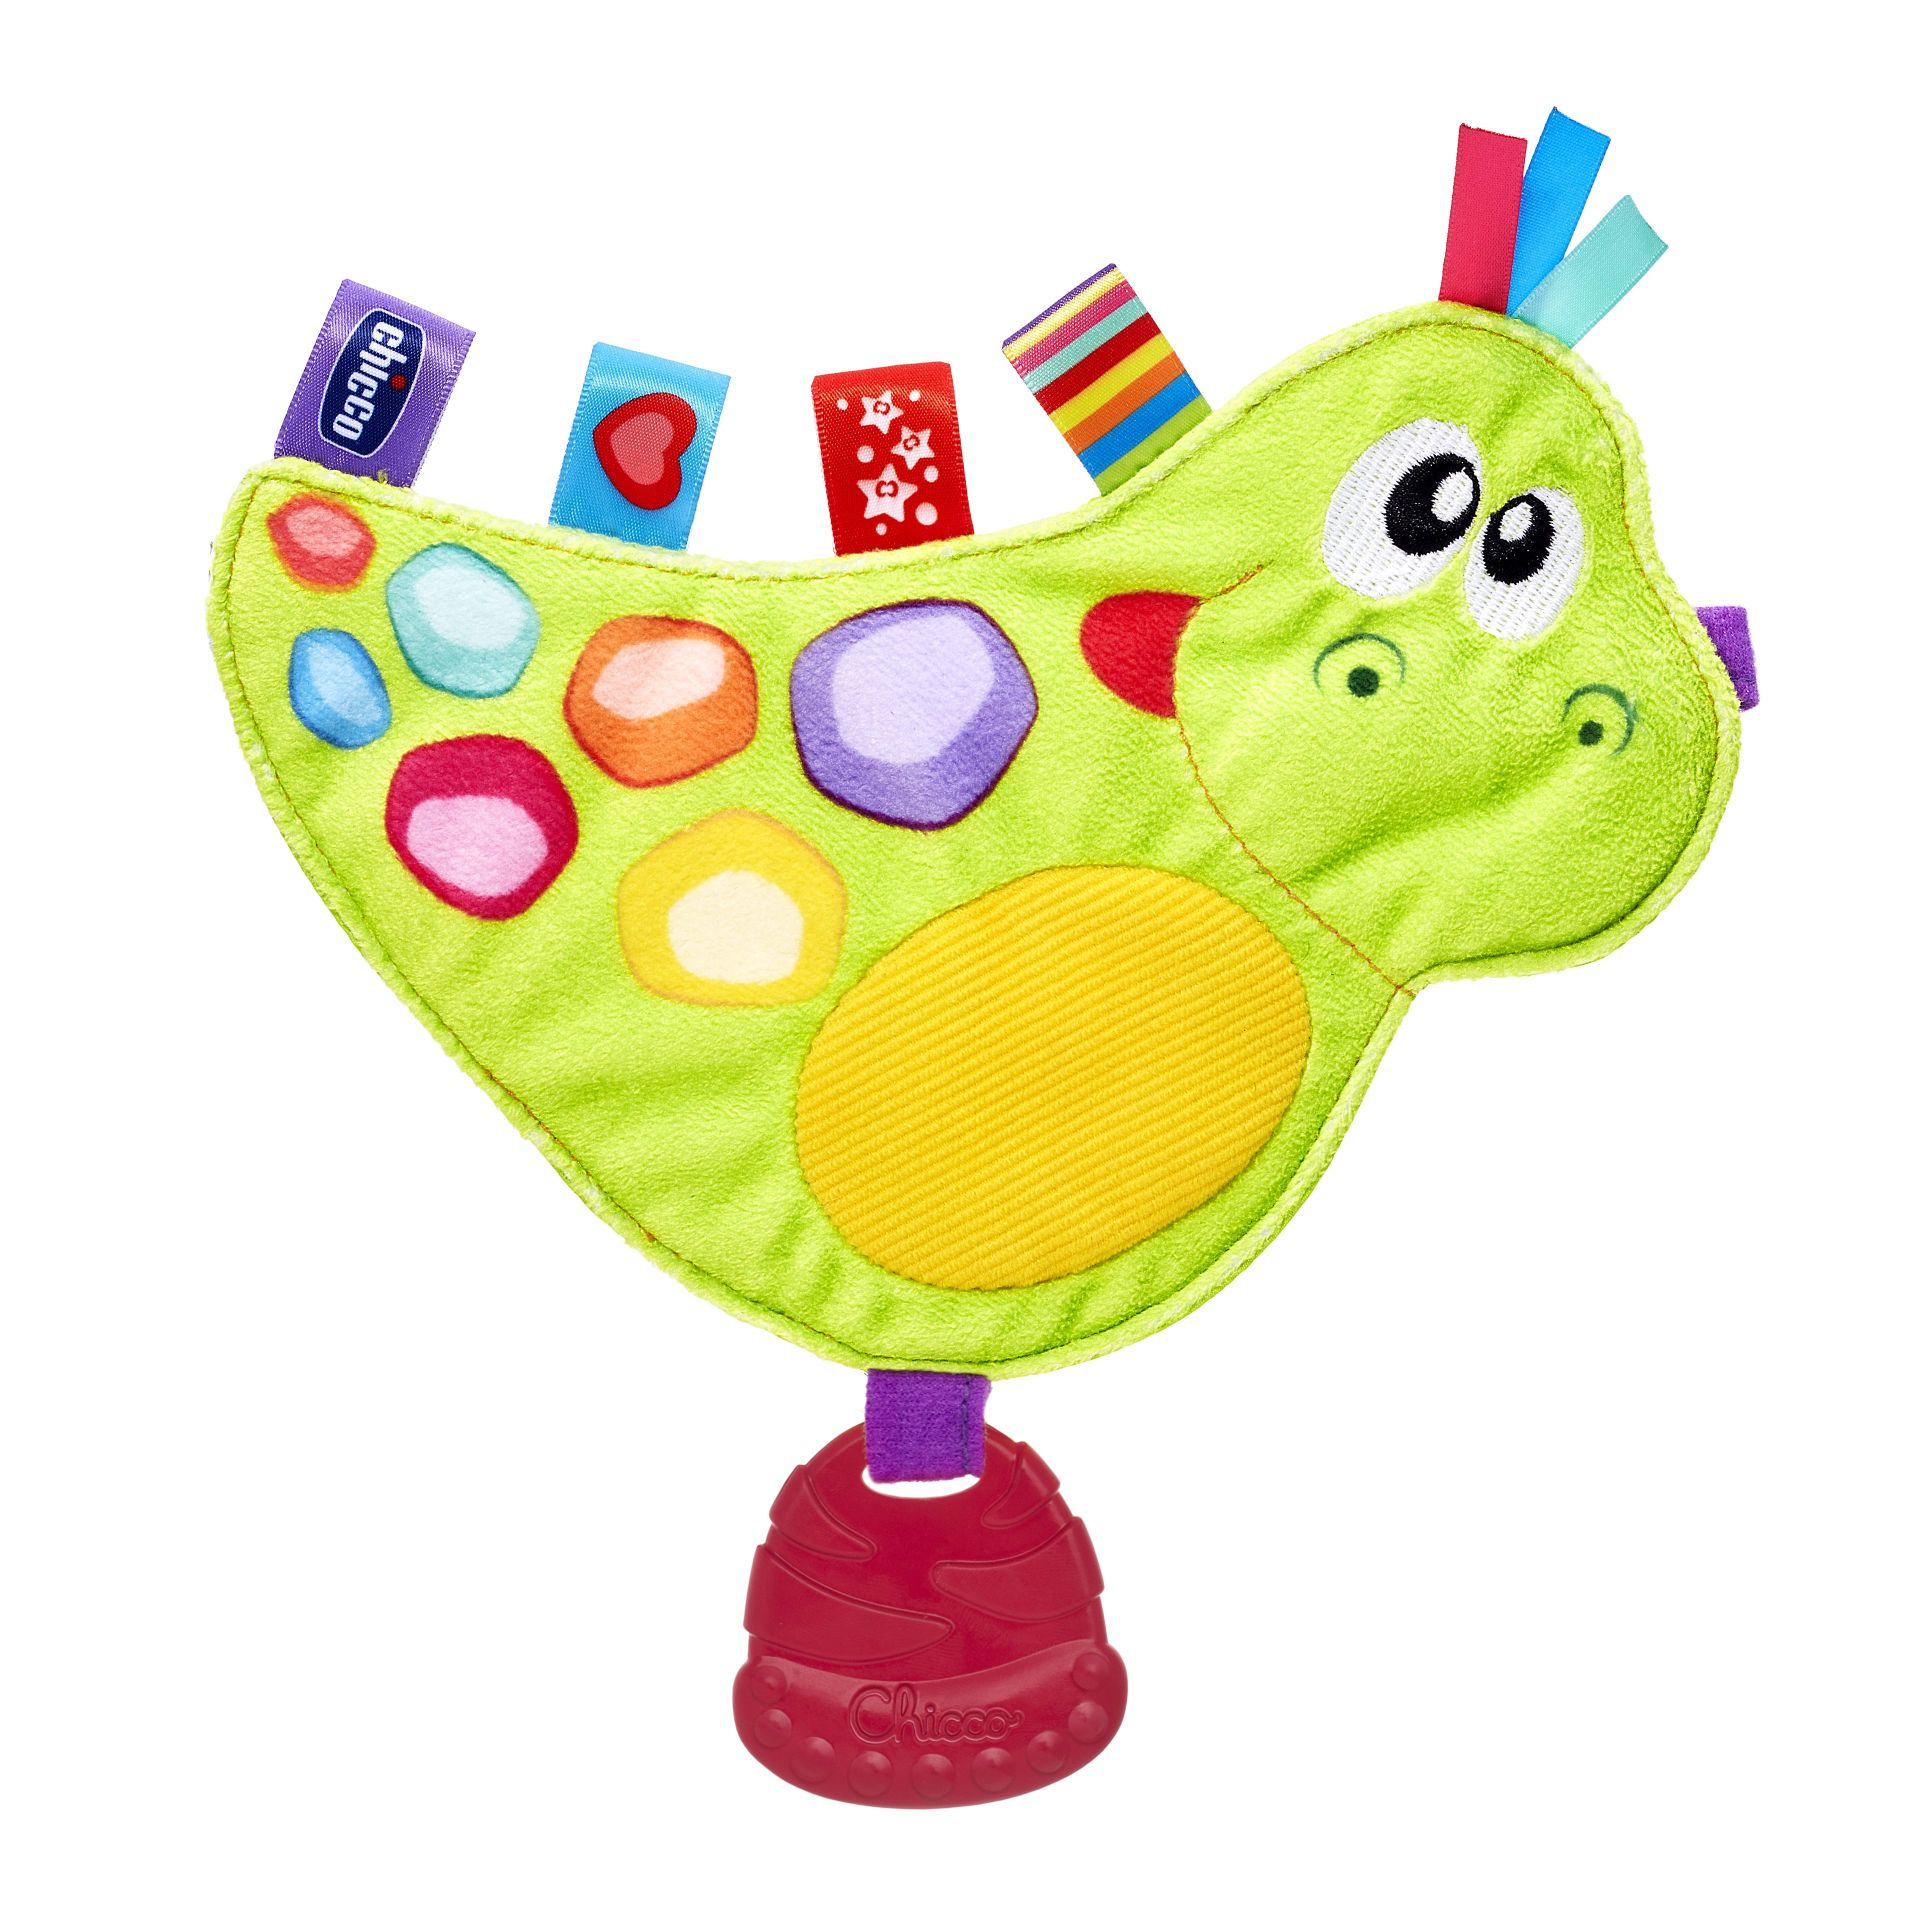 Chicco Baby Senses Soft Toy Dino Buy at kidsroom Toys